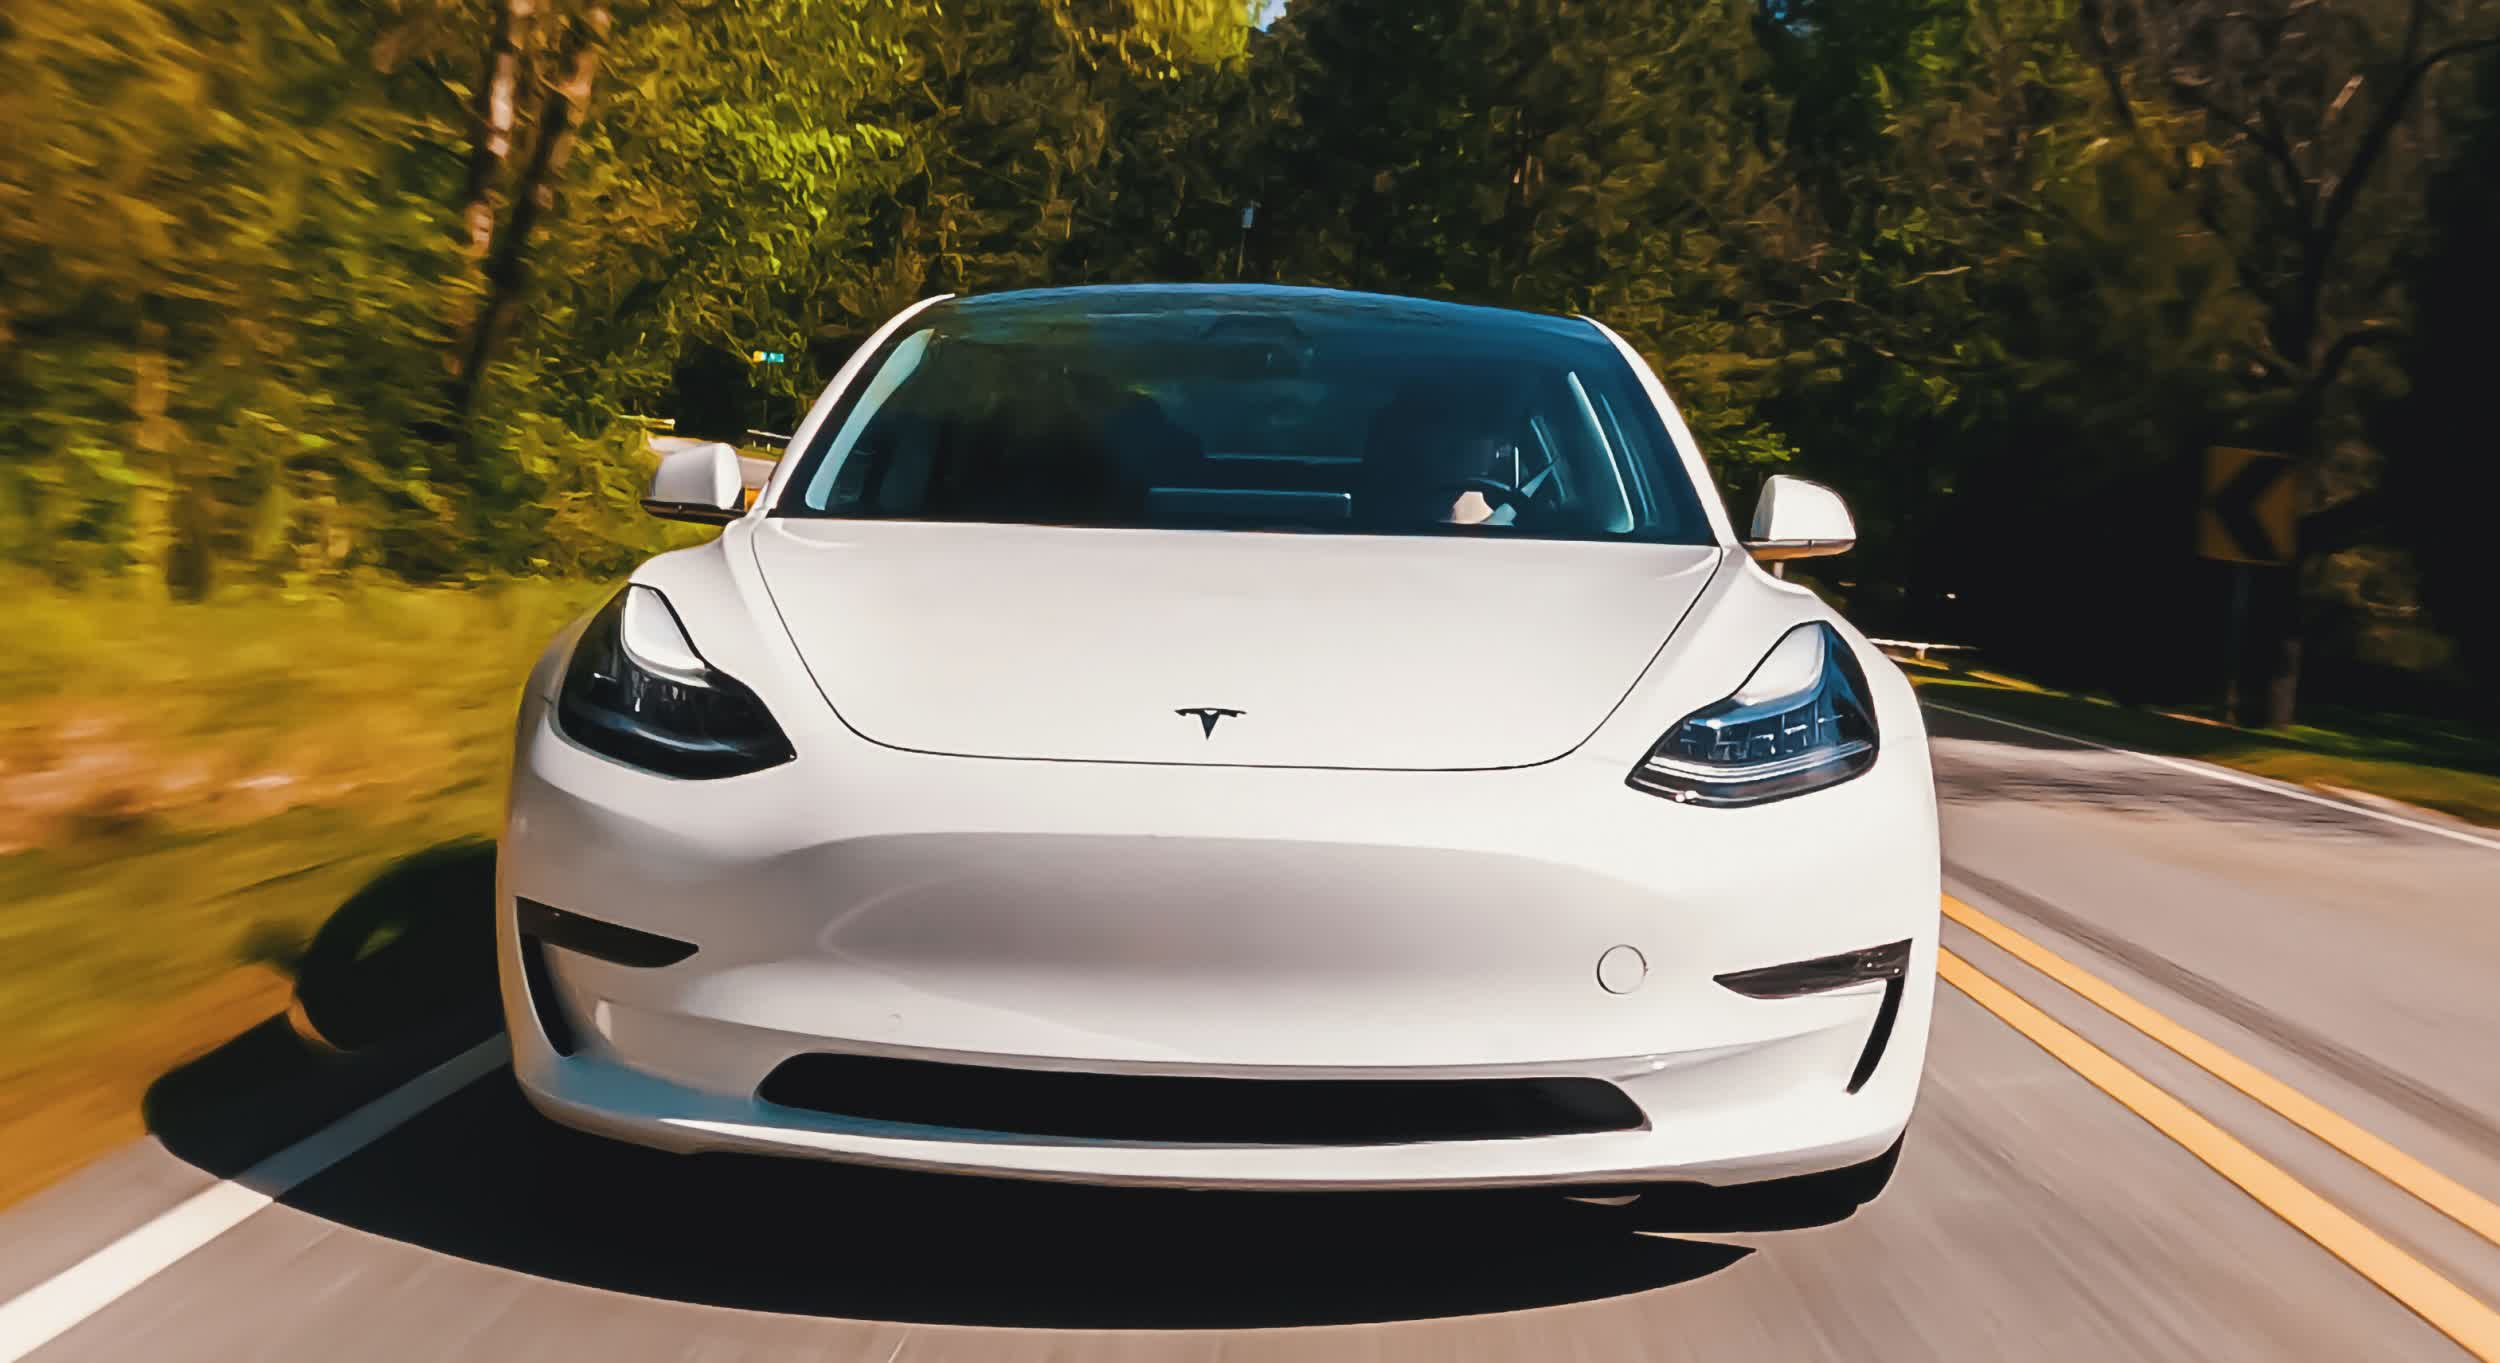 A new study suggests Tesla drivers tend to be more distracted when autopilot is enabled